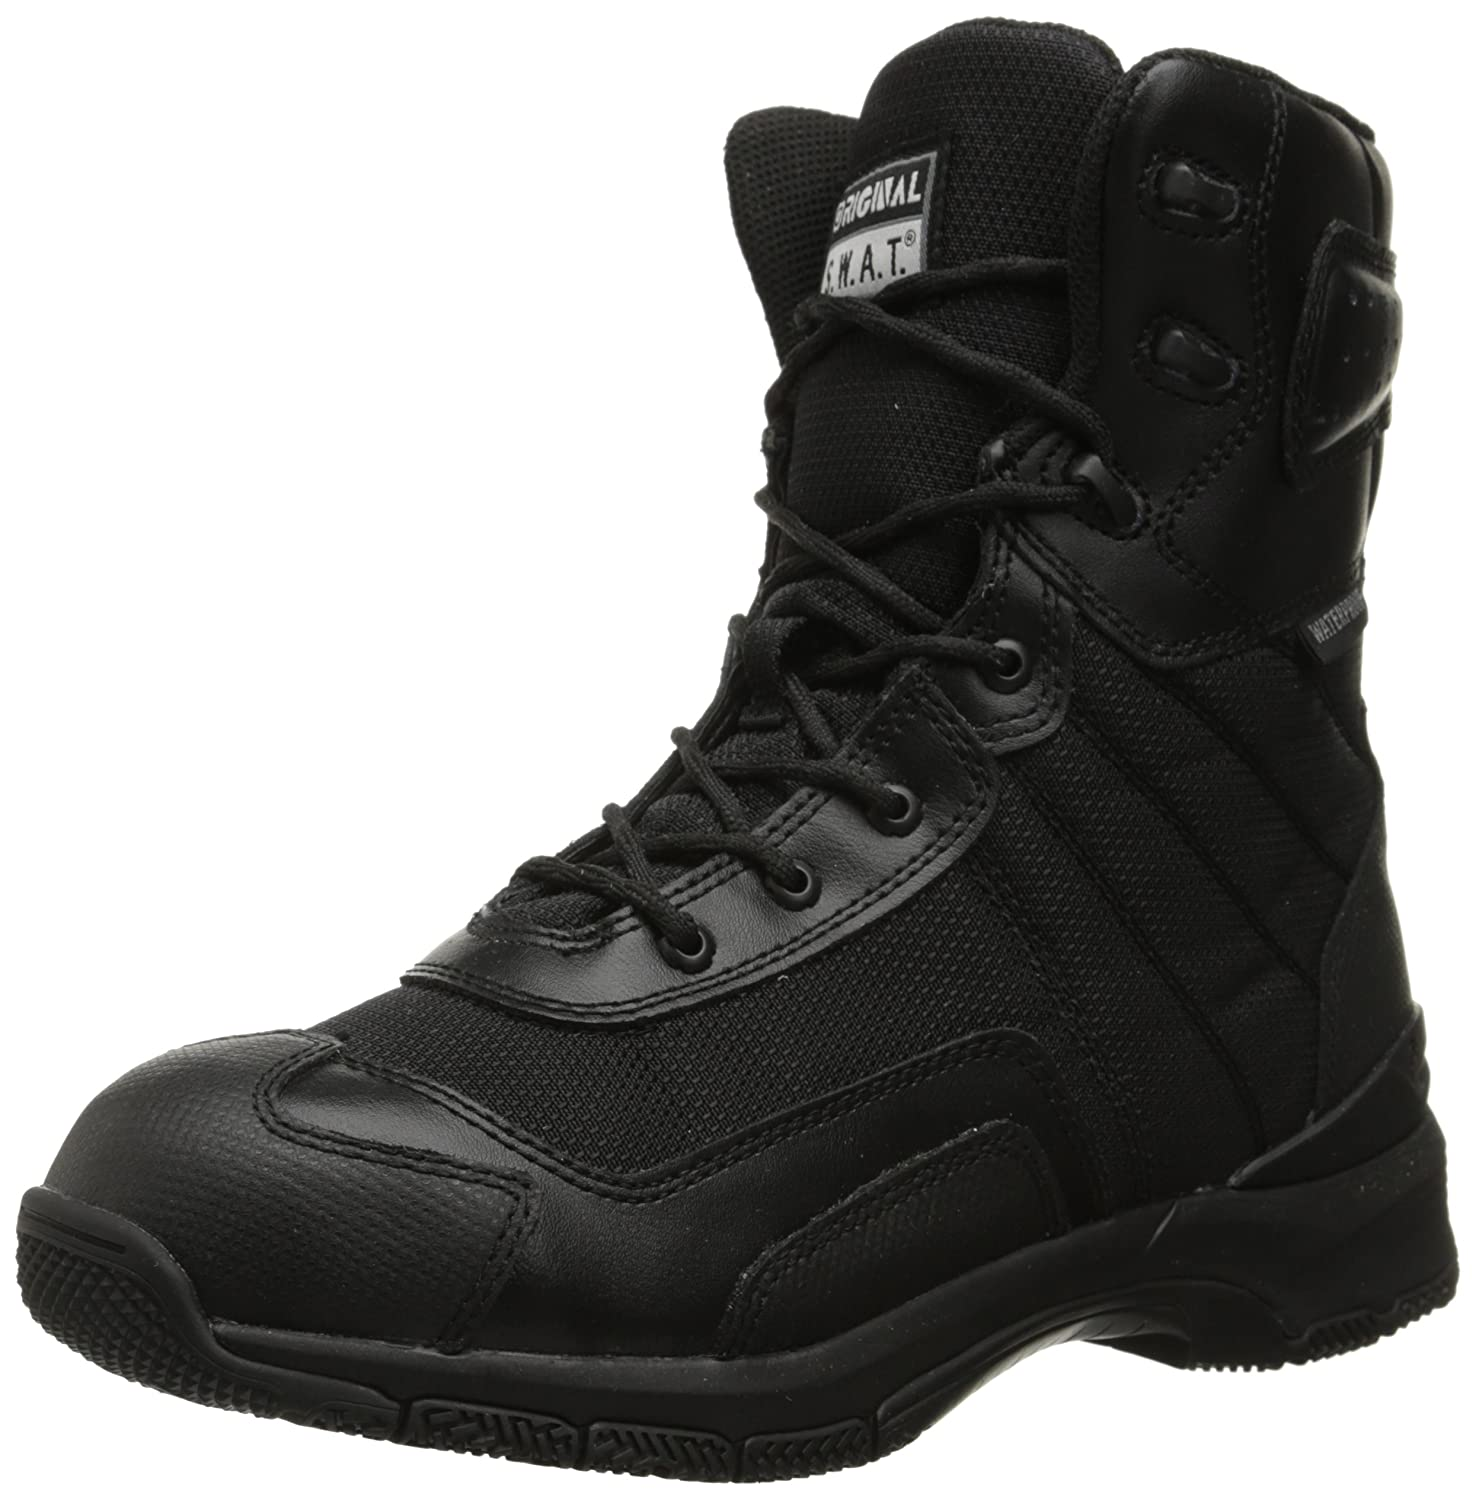 Black Original S.W.A.T. Men's H.A.W.K. 9 Inch Side-Zip Military and Tactical Waterproof Boot